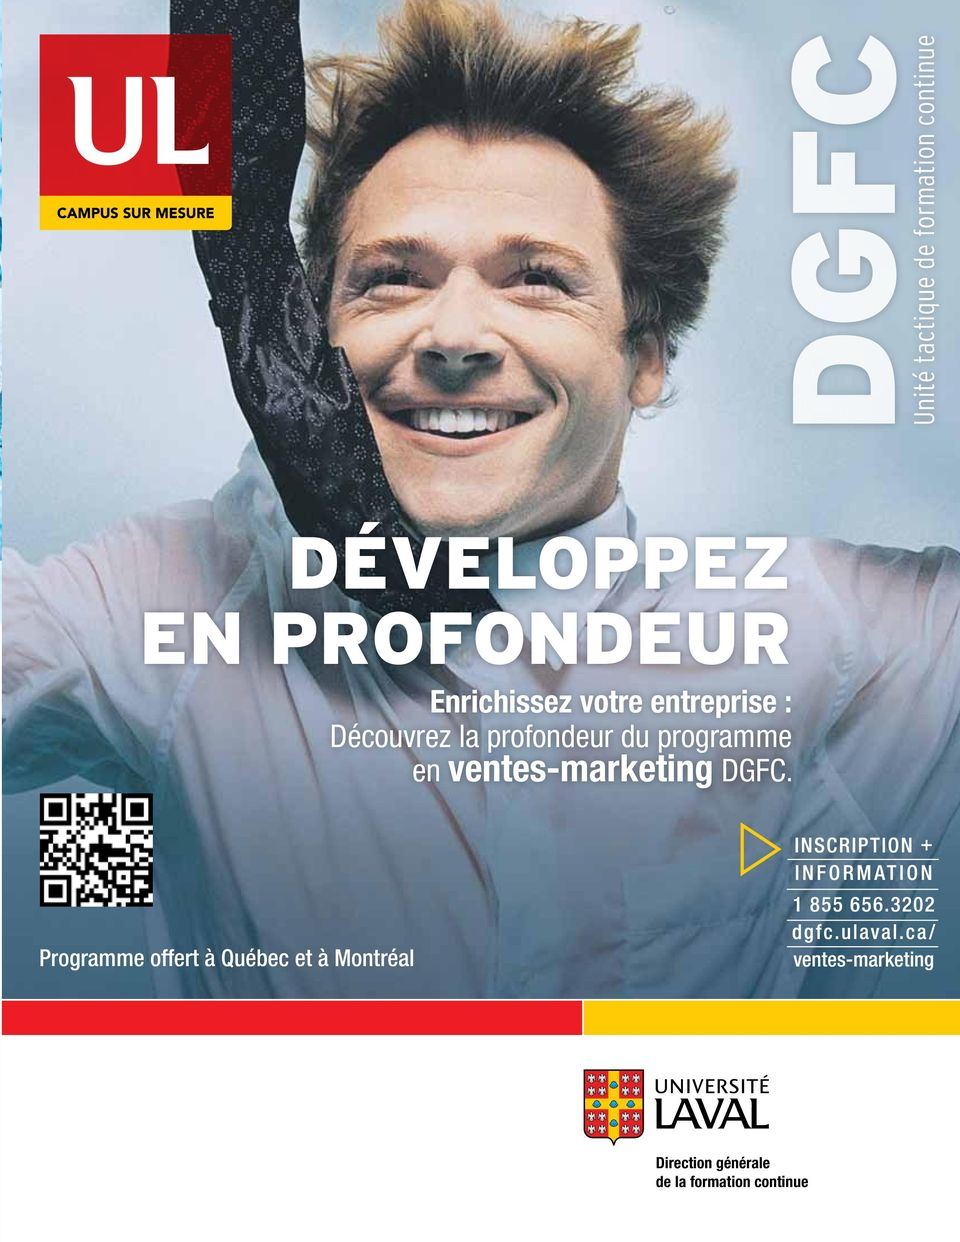 profondeur du programme en ventes-marketing DGFC.